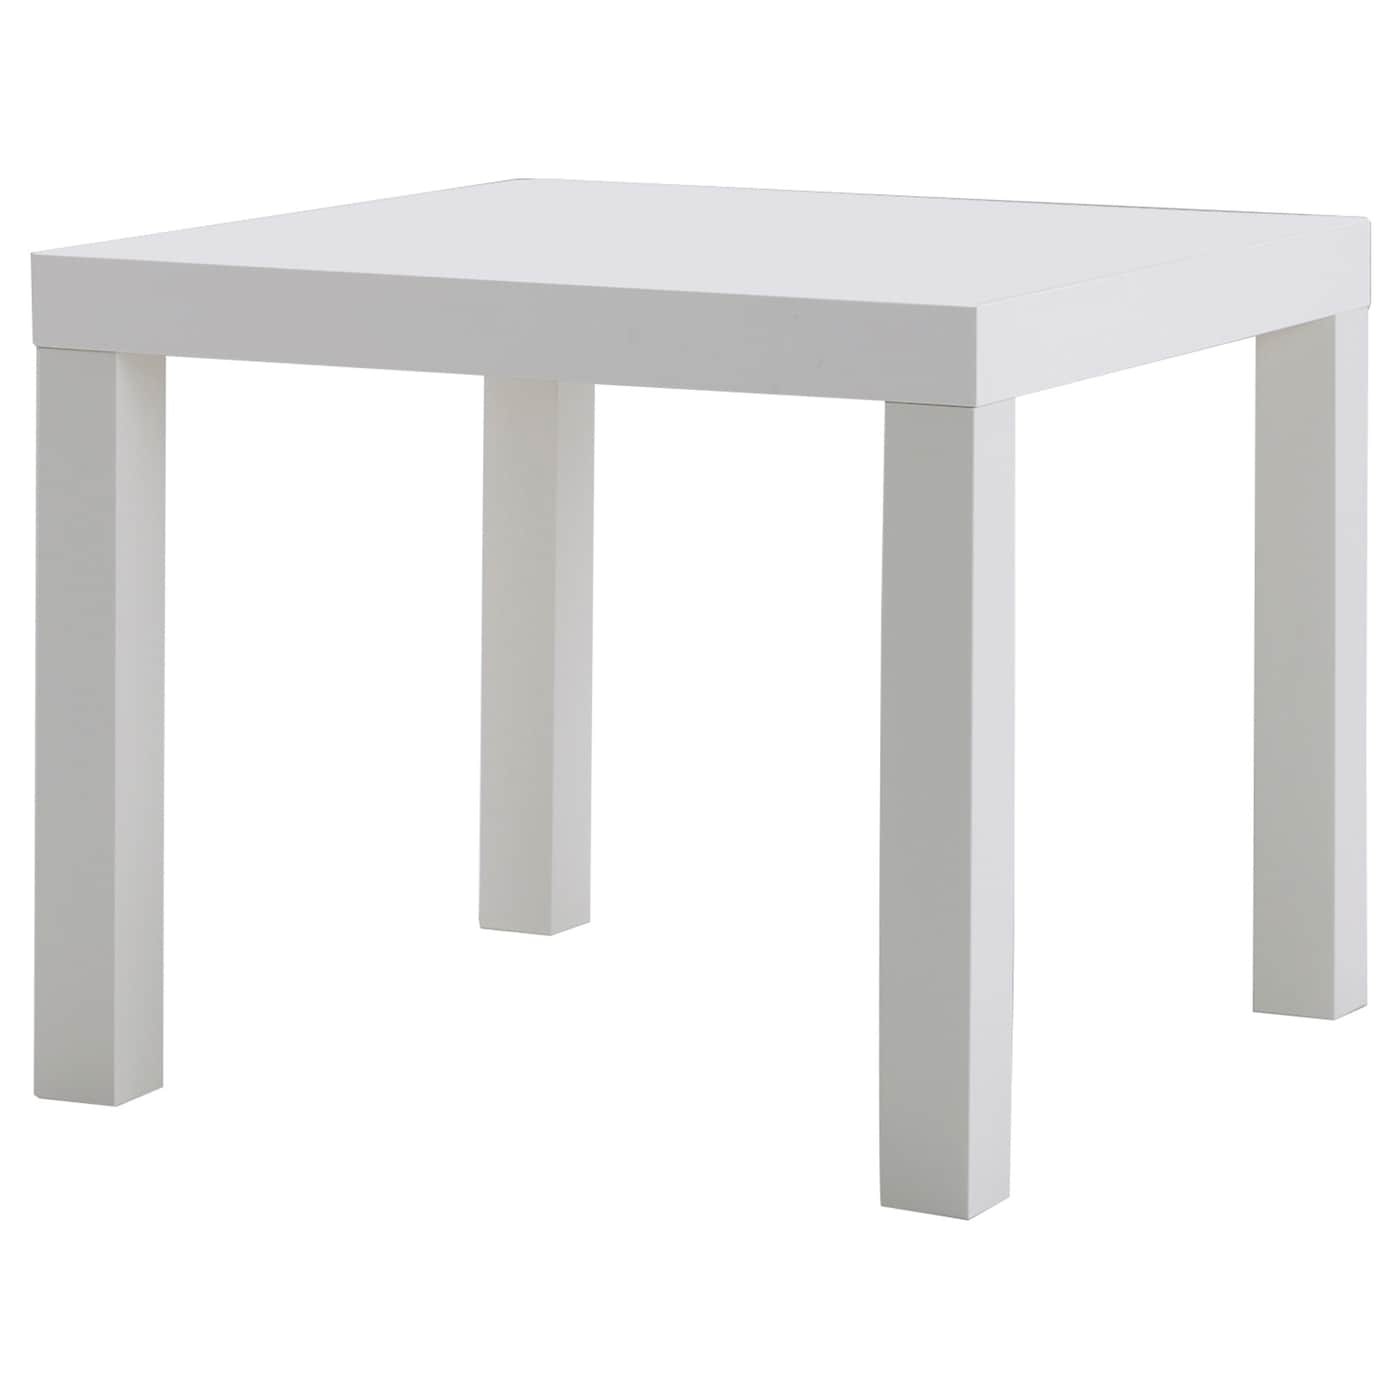 lack side table white 55x55 cm ikea. Black Bedroom Furniture Sets. Home Design Ideas